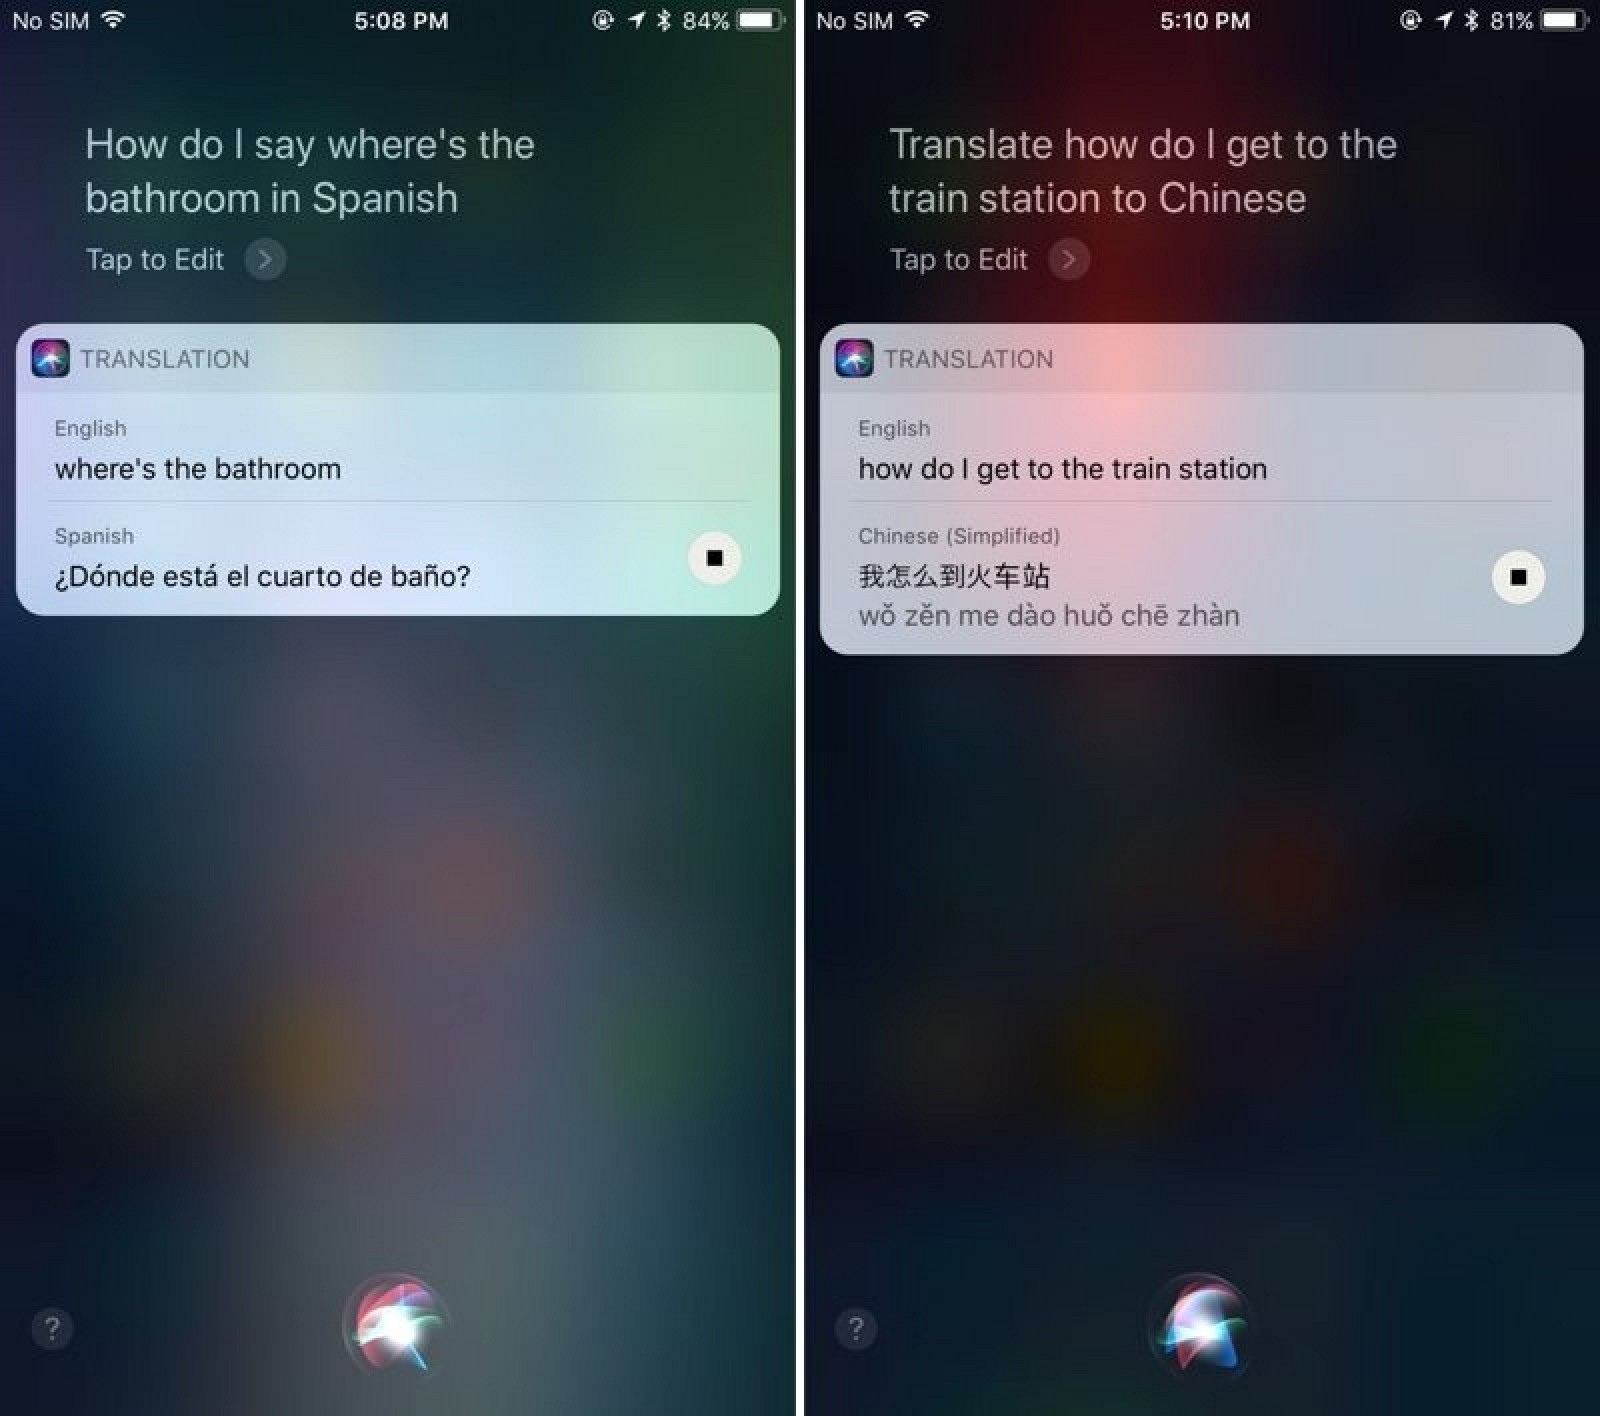 How to Use Siri's New Translation Feature in iOS 11 - Mac Rumors How Do You Say Bathroom In Spanish on laptop is how i got to say spanish, the word beautiful in spanish, how are you doing in spanish, i love you spanish, shut up spanish, translate no to spanish, ordinal numbers 1-100 in spanish, my name in spanish, say hola to spanish, hello my name is spanish, how not to say in spanish, say thank you in spanish, good morning in spanish,